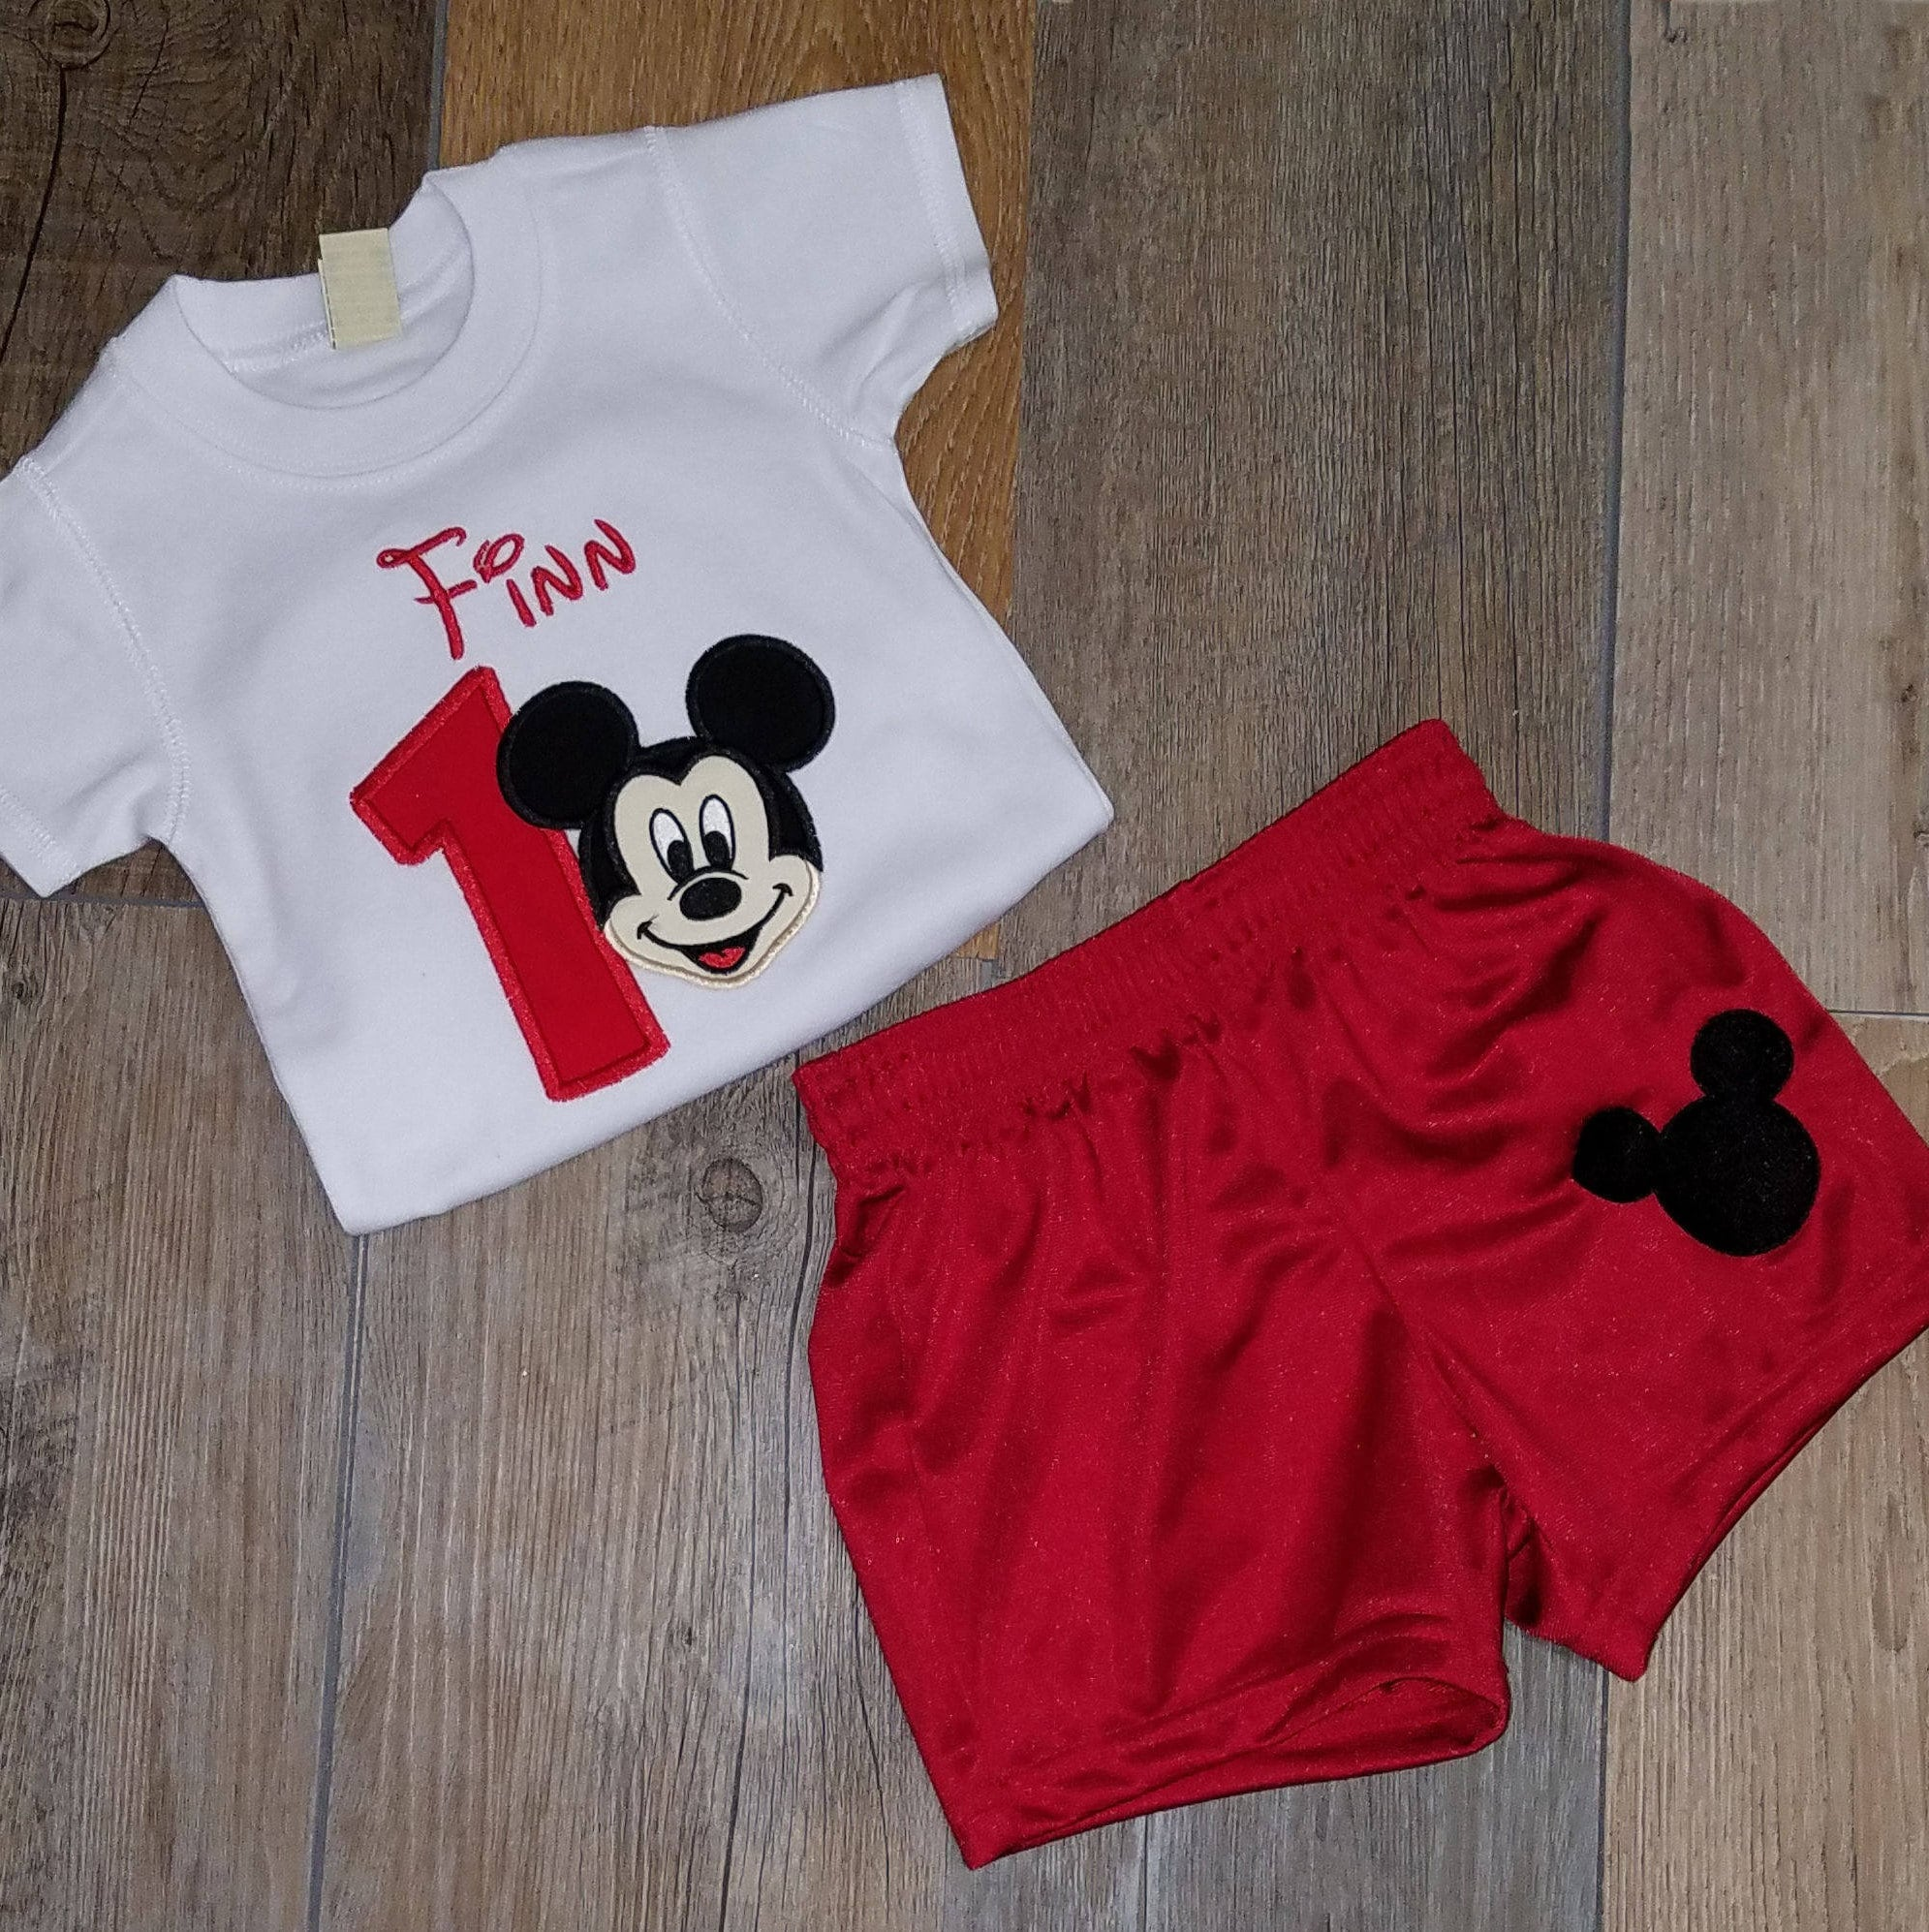 1st birthday boy outfit, Mickey Mouse